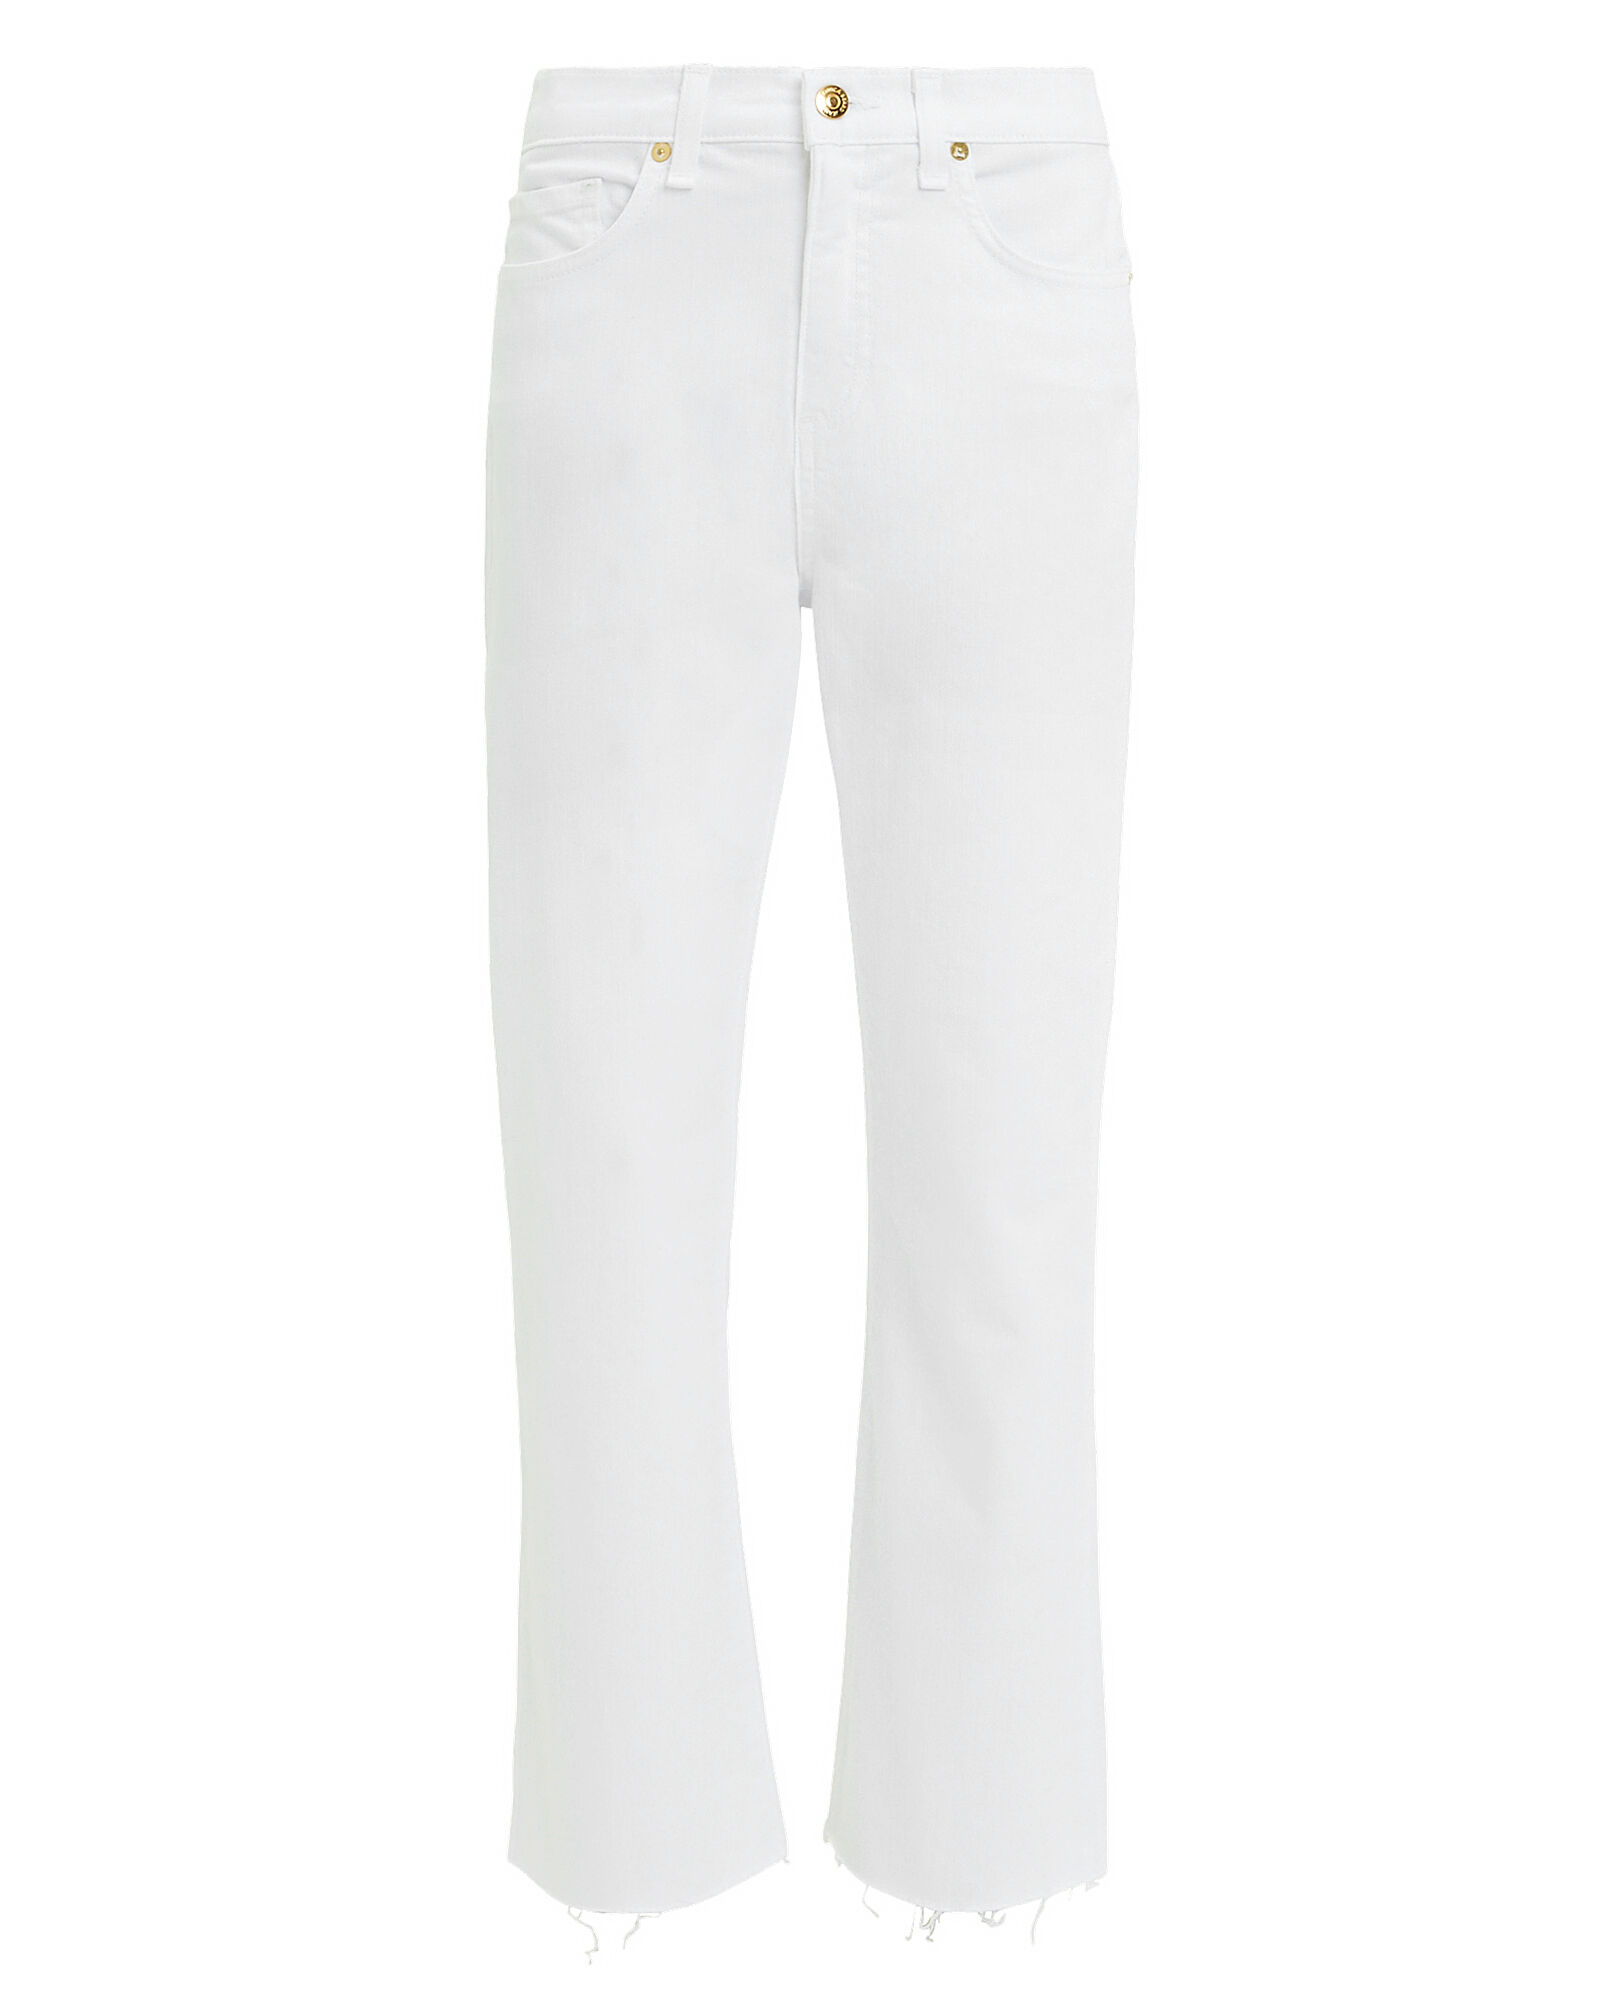 Carly Kick Flare Jeans, WHITE, hi-res